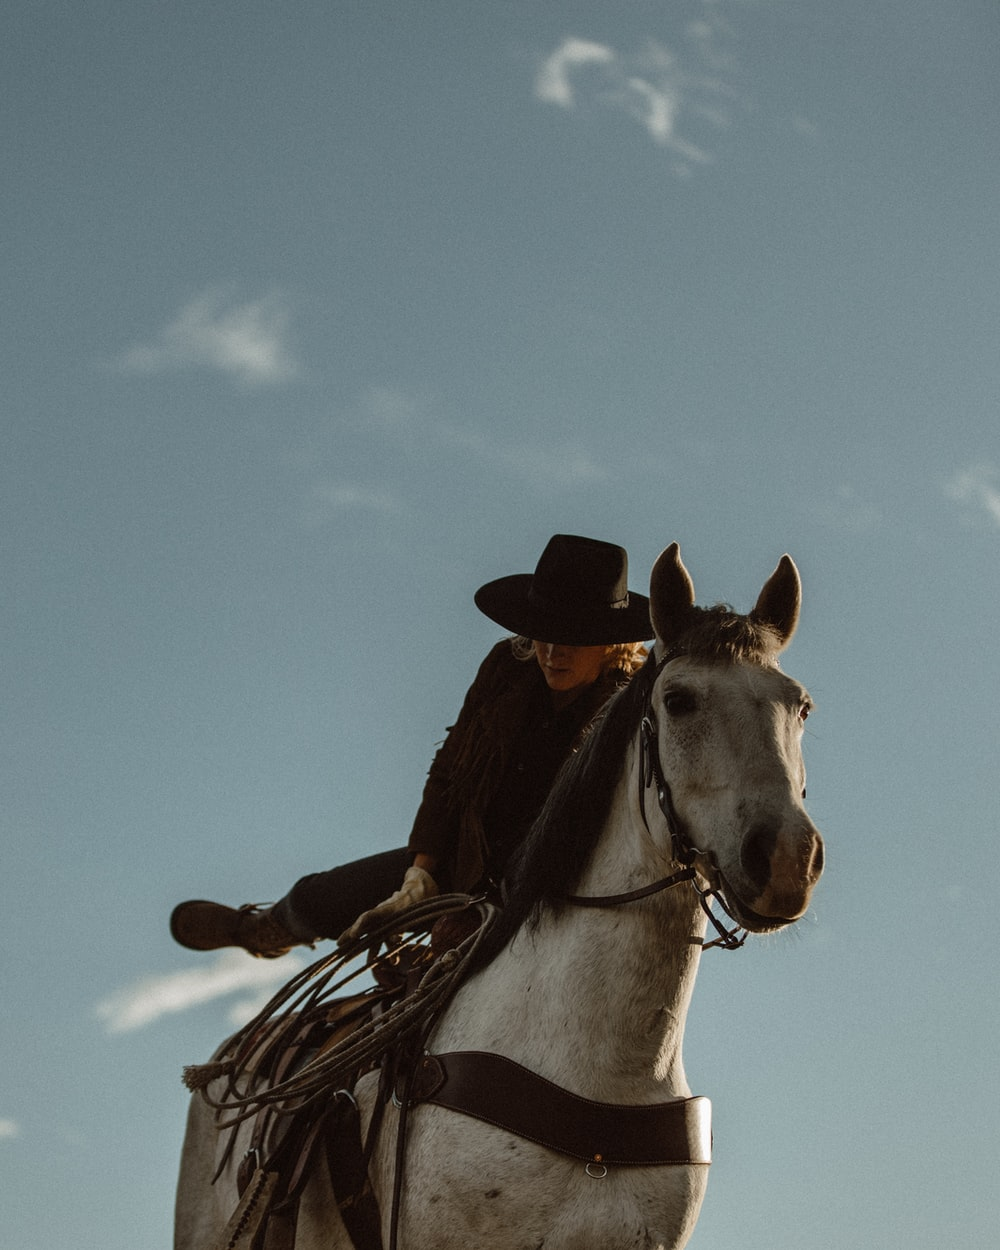 brown and white horse wearing cowboy hat